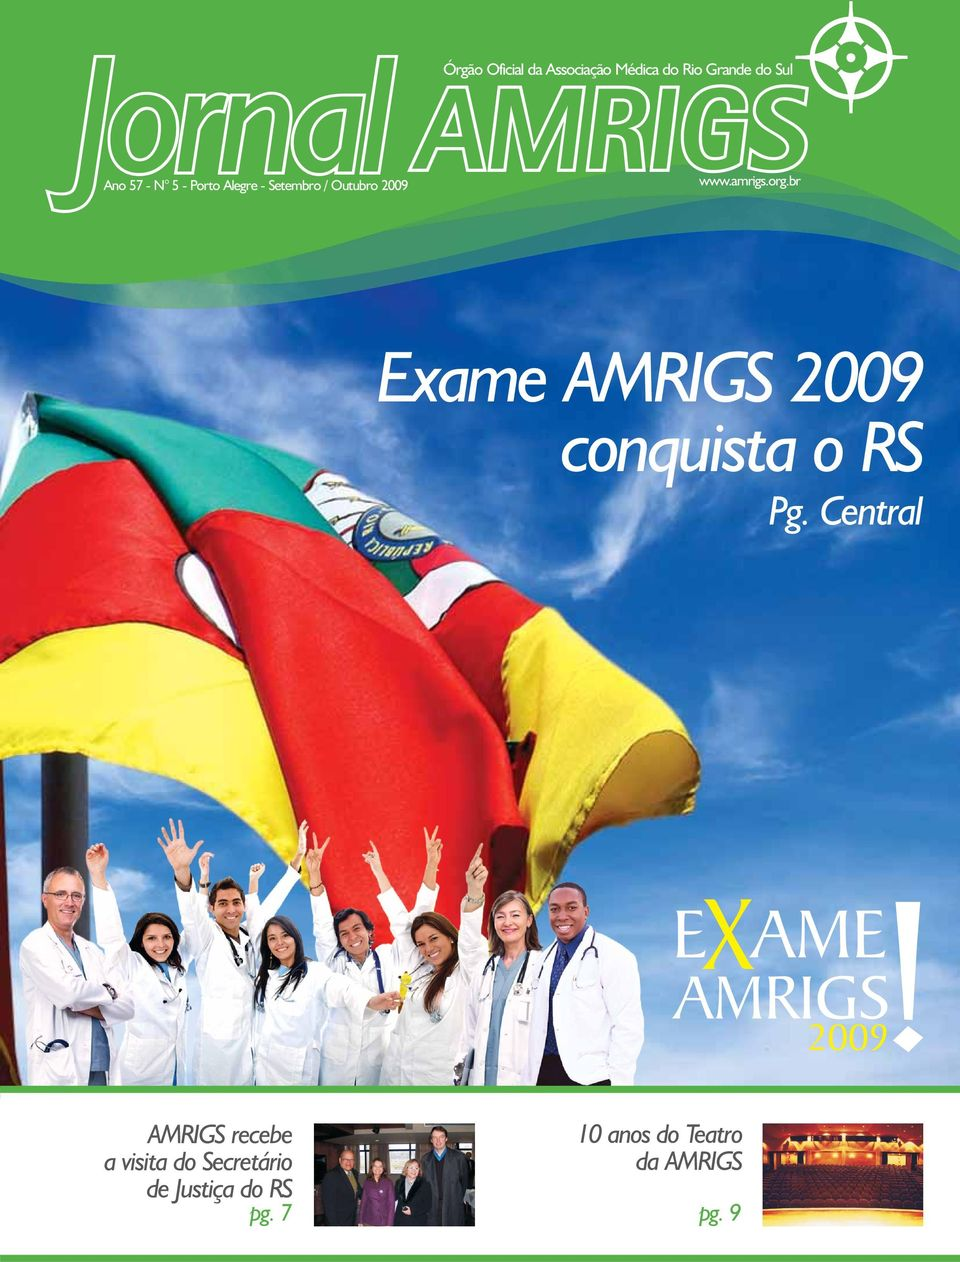 br Exame AMRIGS 2009 conquista o RS Pg. Central 2009!